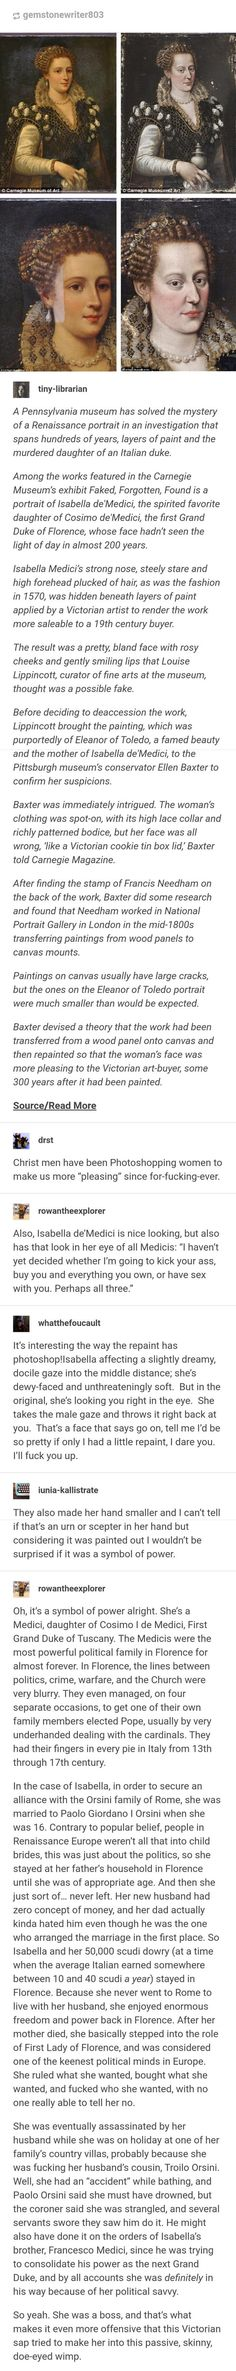 History Memes, History Facts, Art History, Weird Facts, Fun Facts, Badass Women, The More You Know, Interesting History, Patriarchy